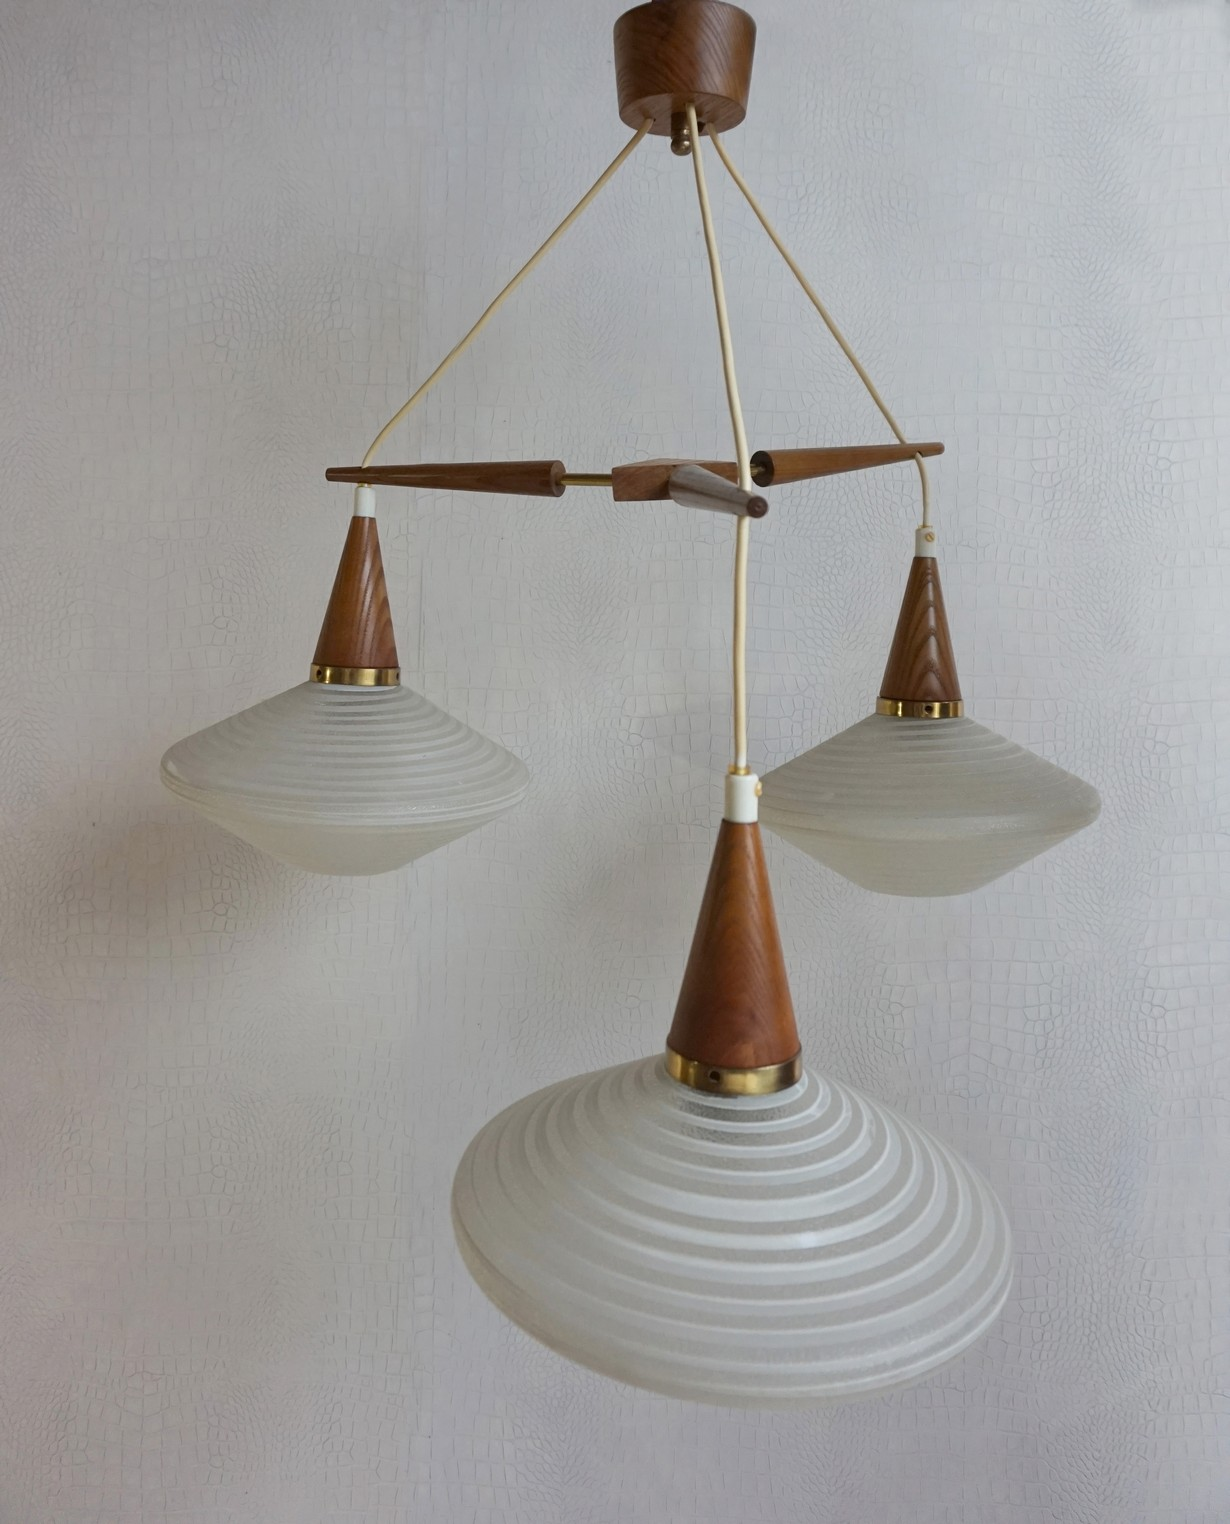 Teak, glass, Danish, lamp, pendant, cieling, light, chandelier, pastoe, hanglamp, vintage